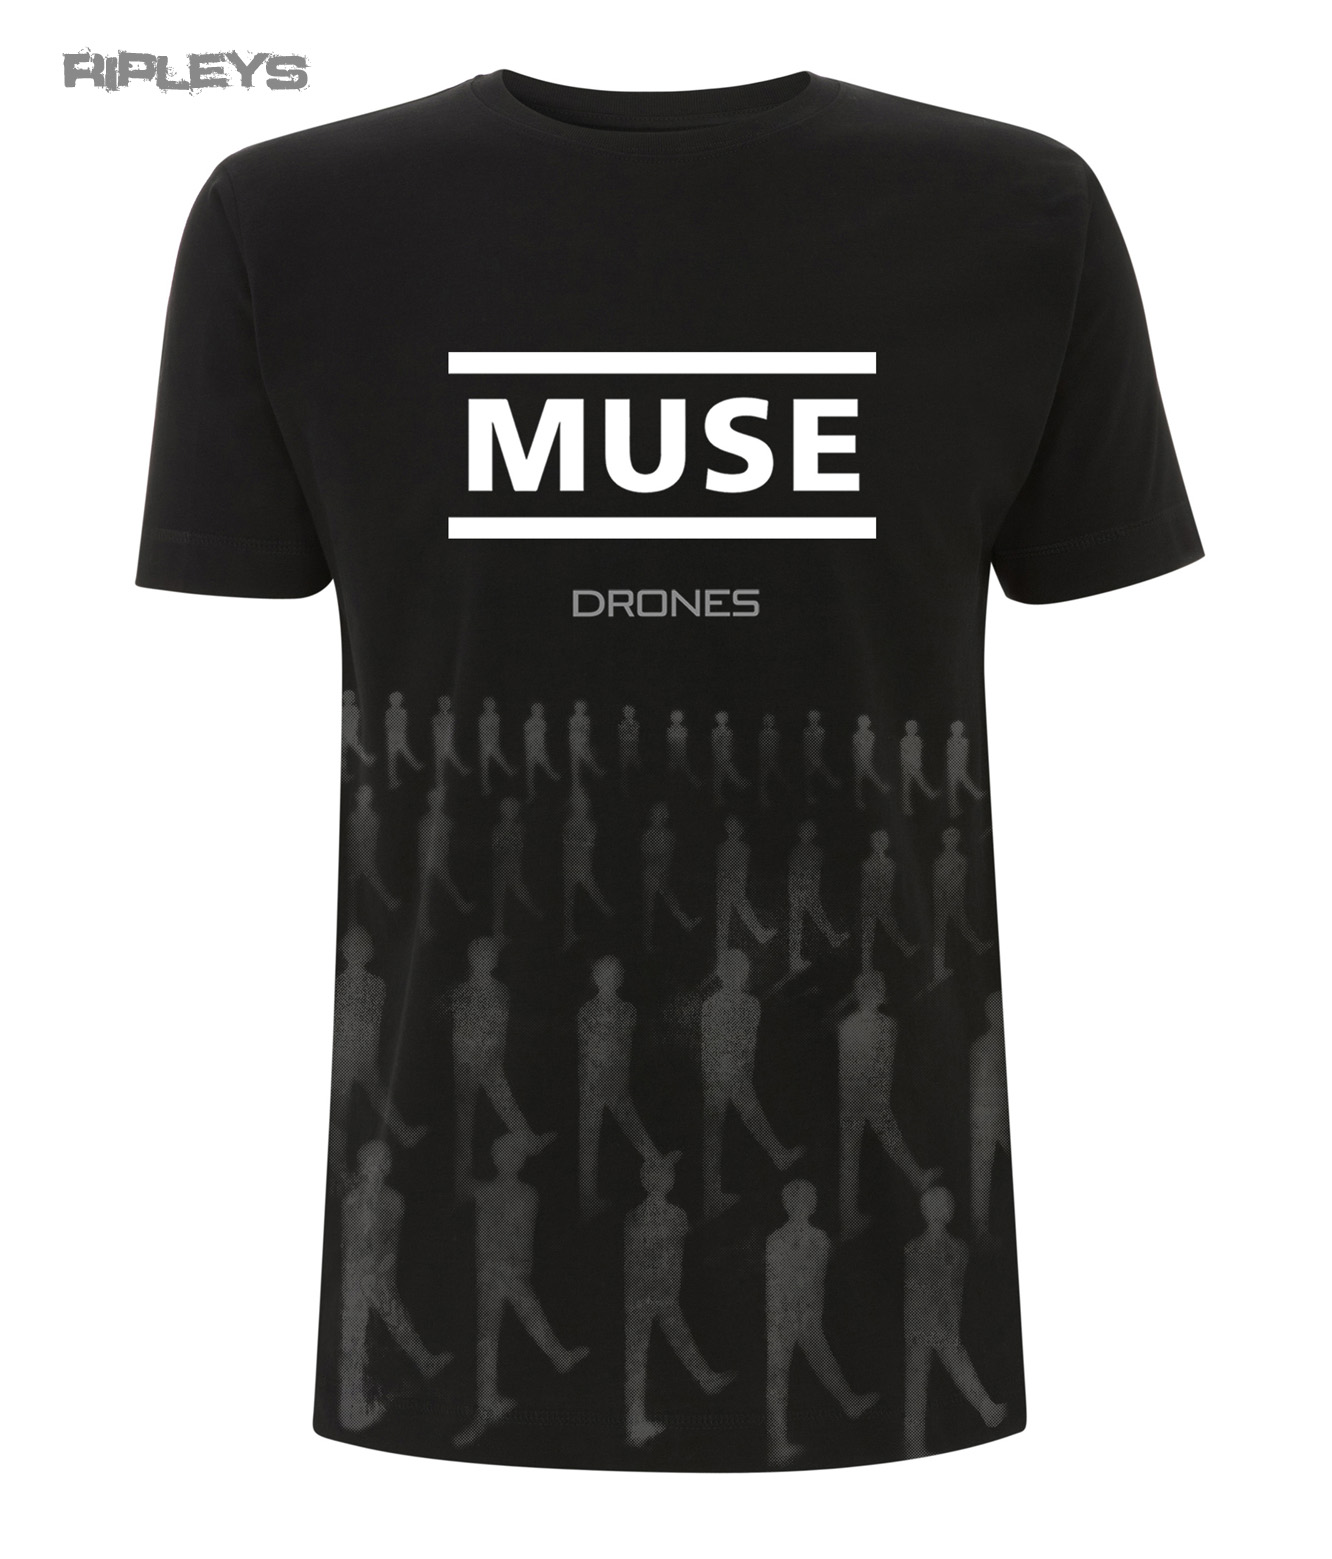 official t shirt muse logo drones album toned drones all. Black Bedroom Furniture Sets. Home Design Ideas